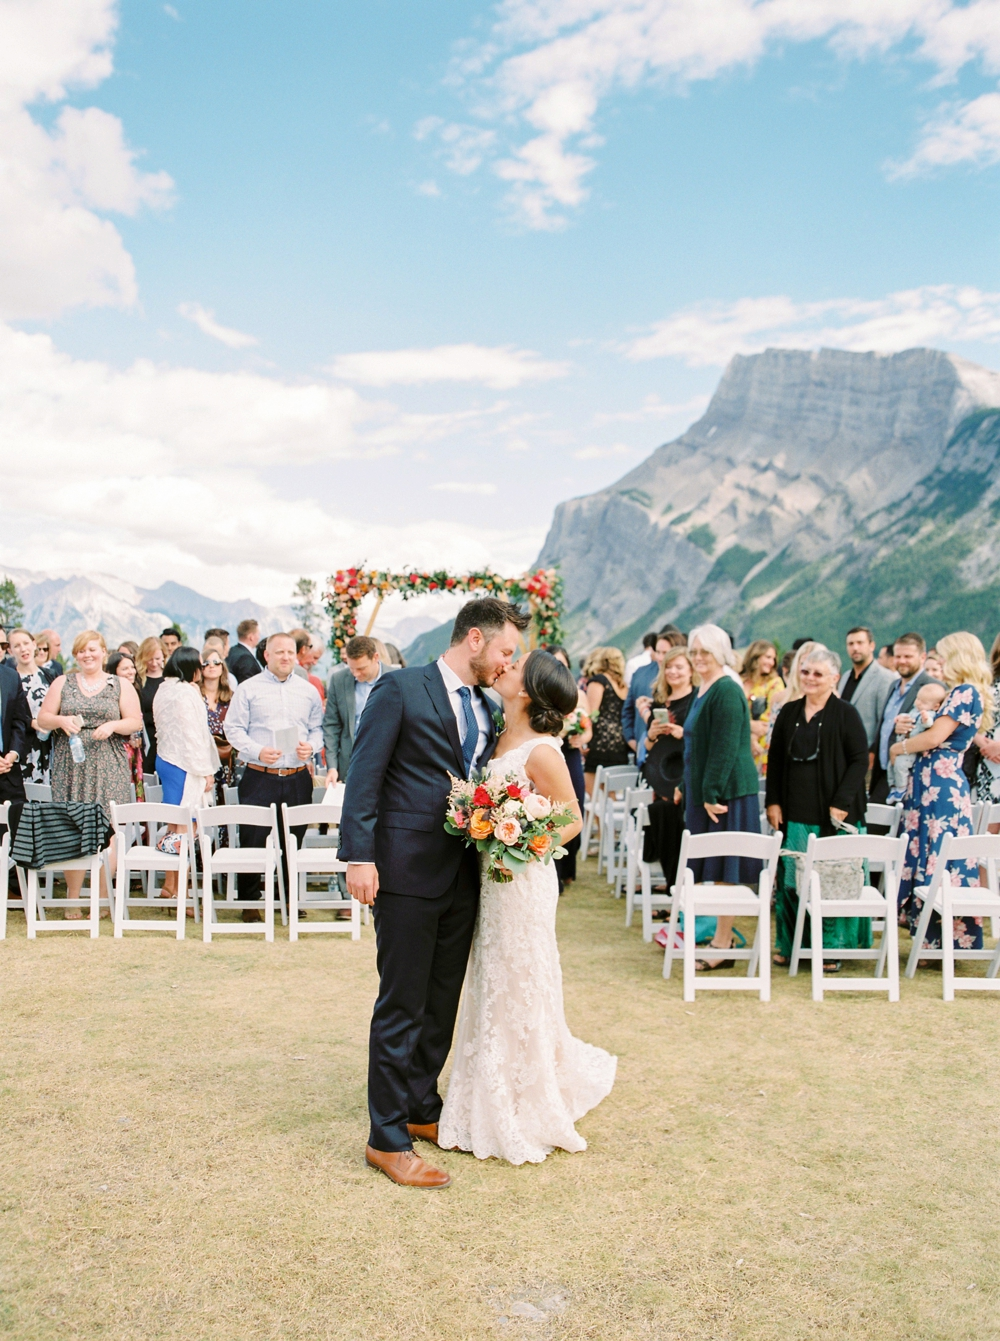 Banff Wedding Photographers | Banff tunnel mountain reservoir | wedding ceremony decor brightly colored floral arch | Justine Milton fine art film photographers